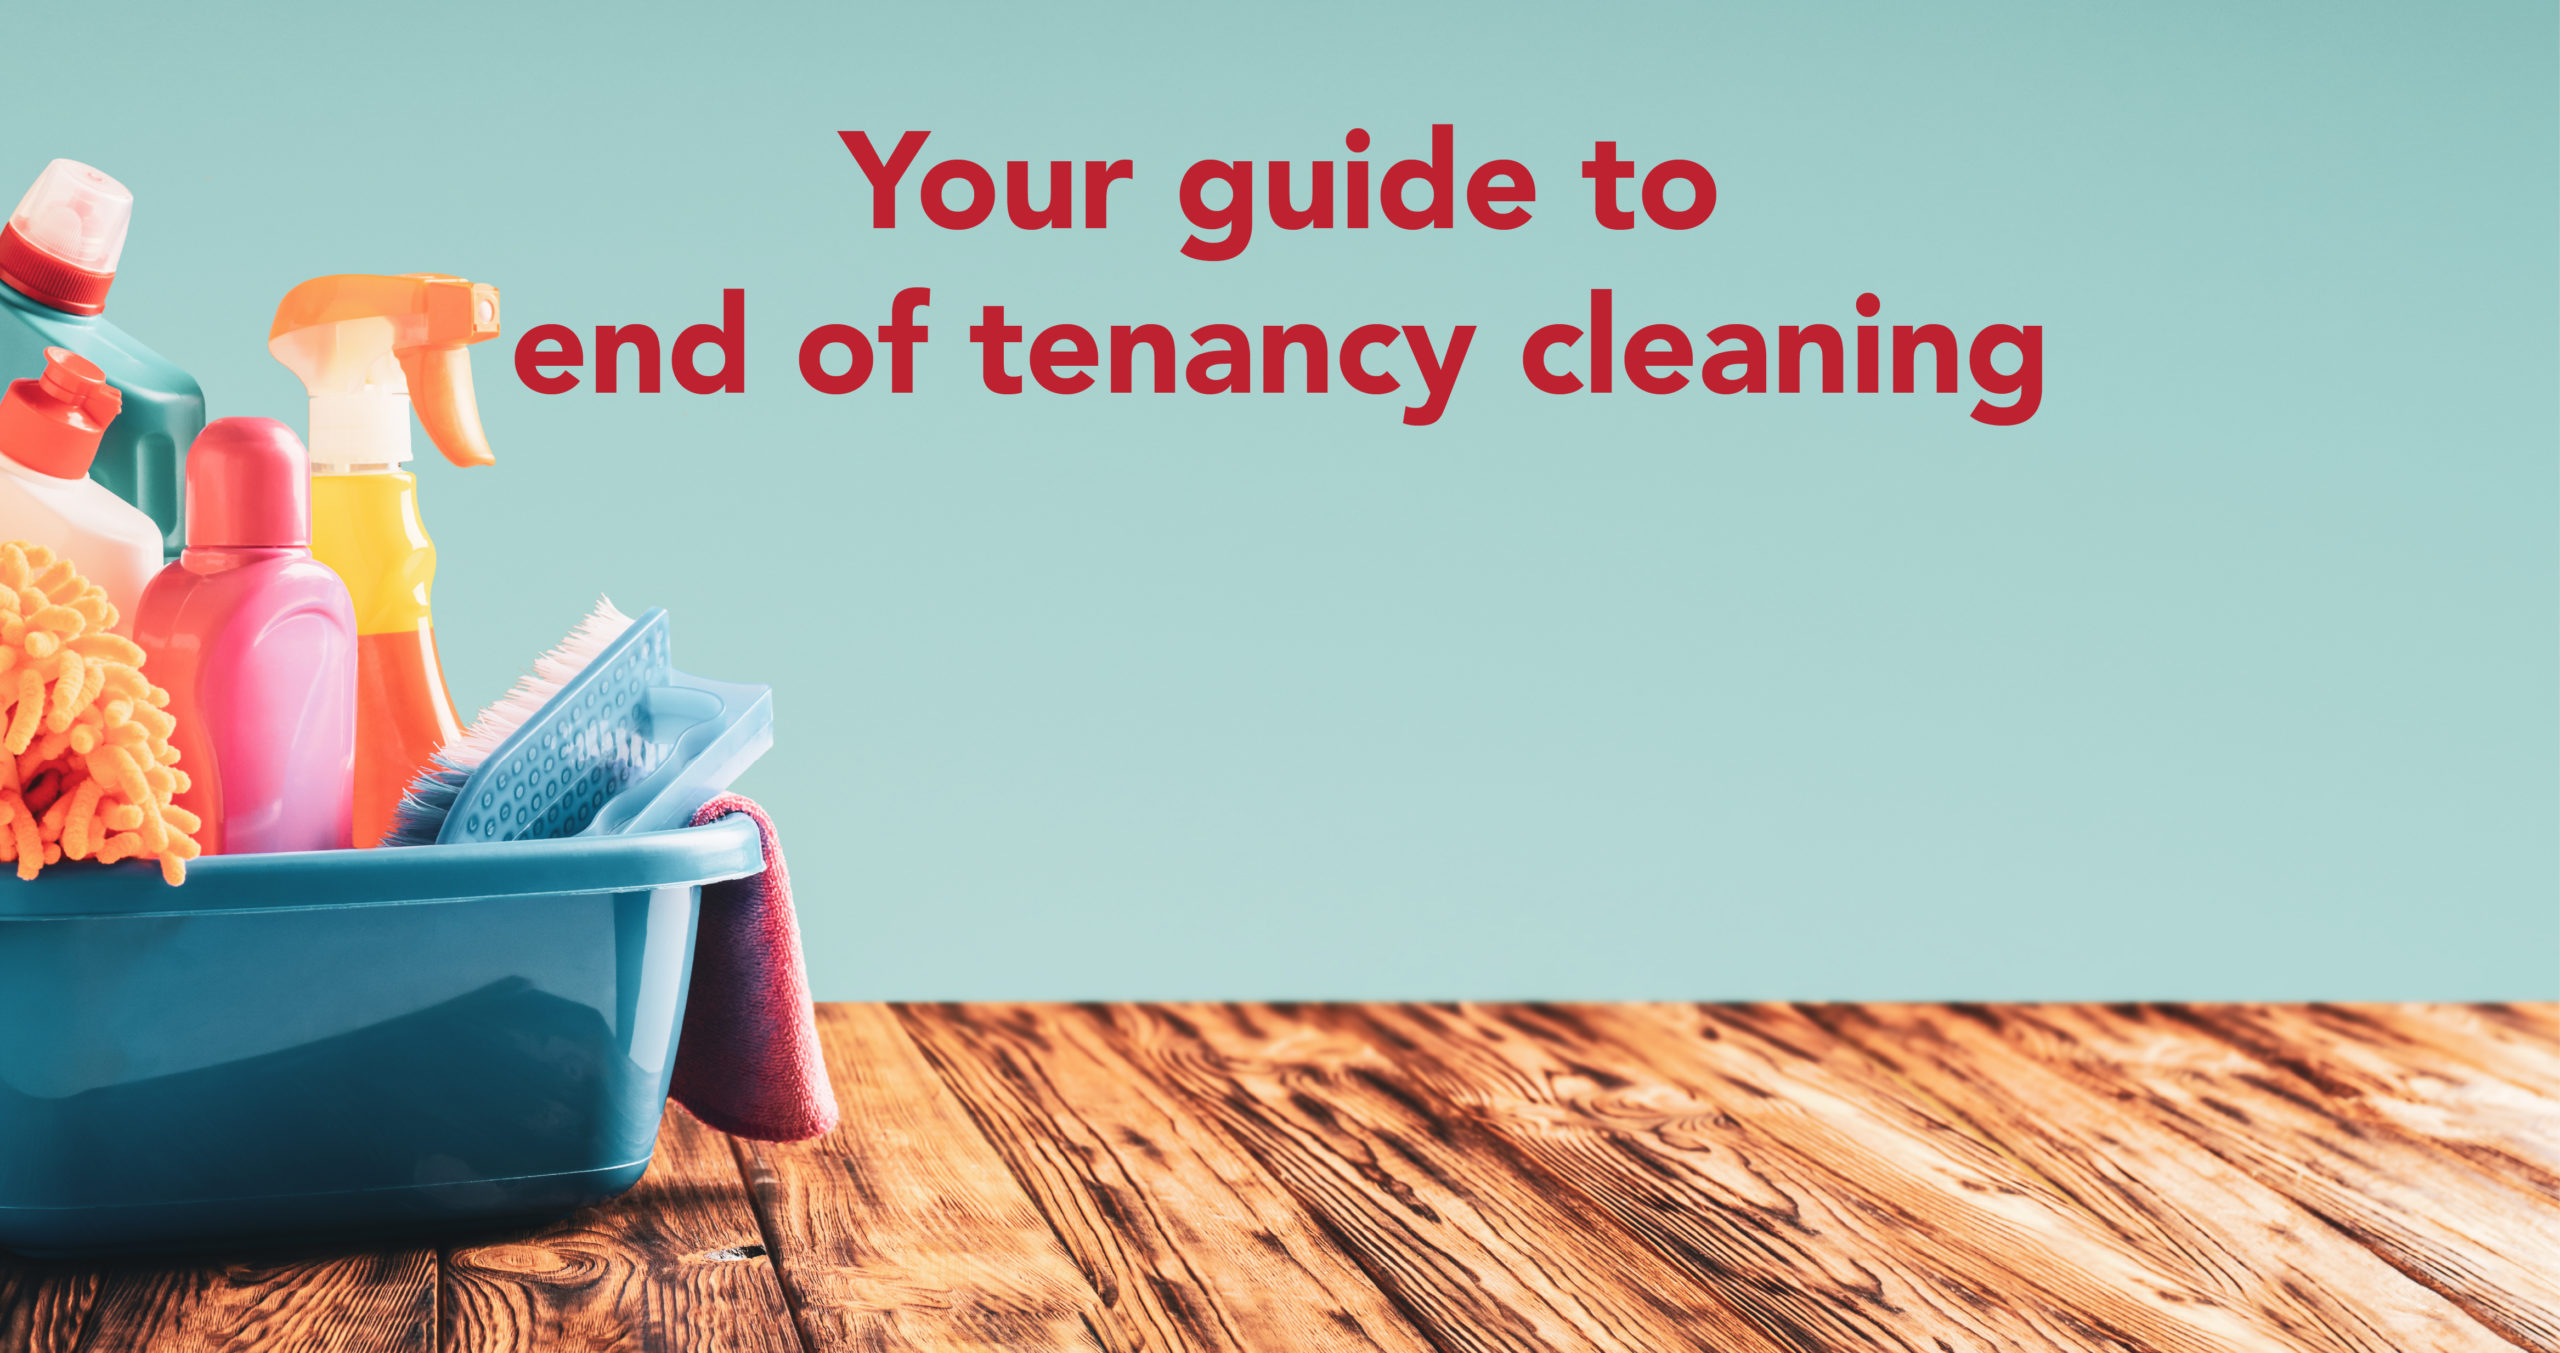 End of tenancy cleaning - A guide for landlords